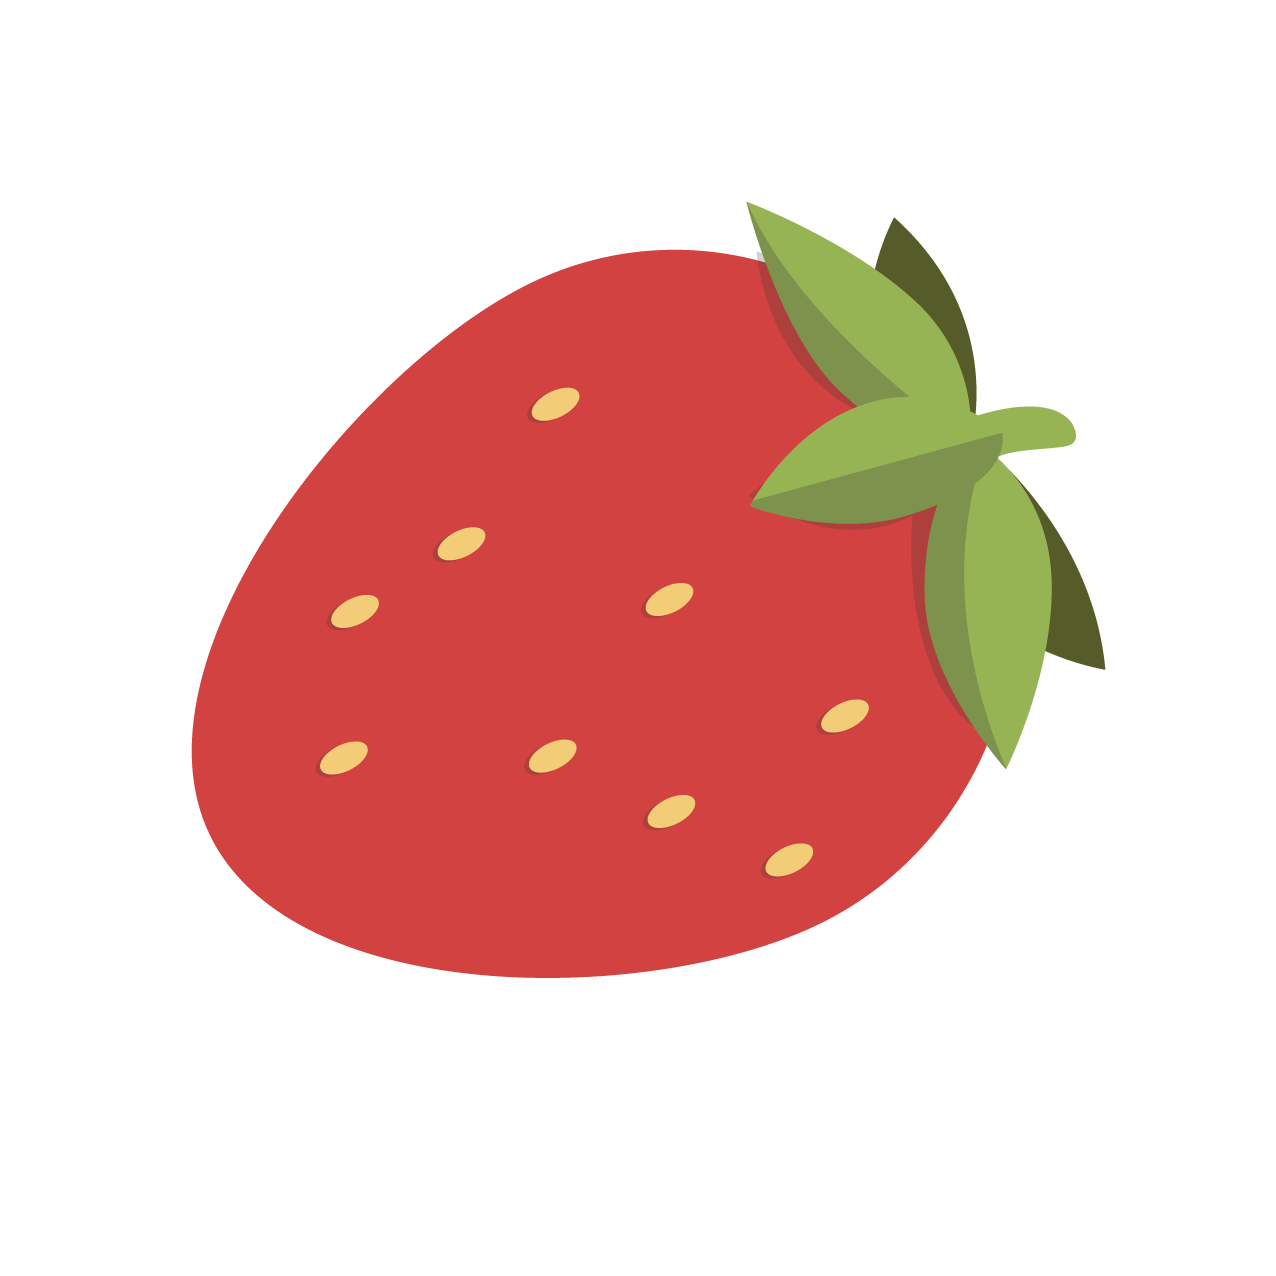 Red Strawberry Cartoon Strawberry Png Image Strawberry Clipart